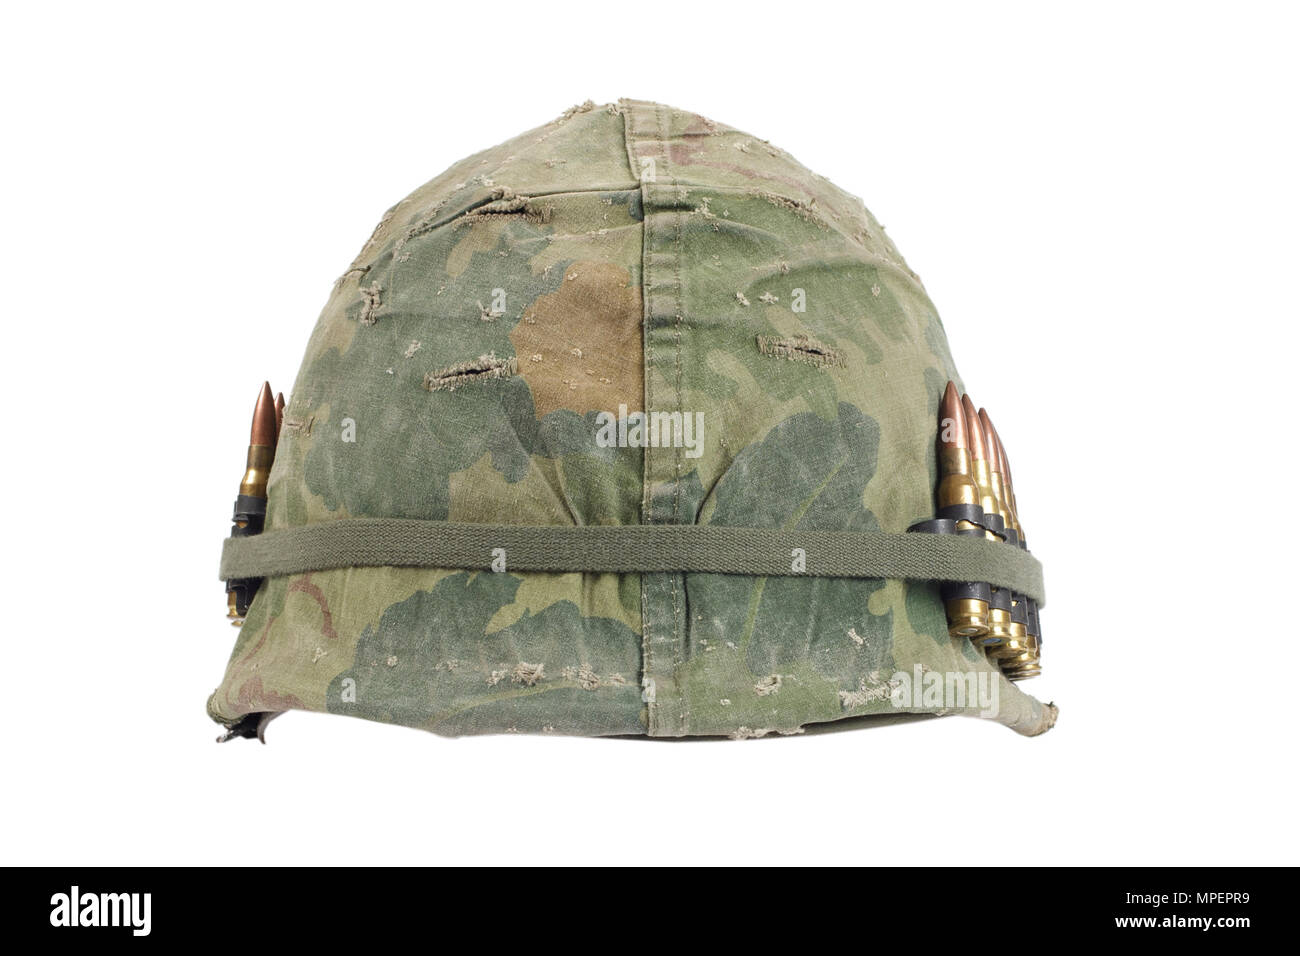 Us Army Helmet With Camouflage Cover And Ammo Belt Vietnam War Period Isolated Stock Photo Alamy